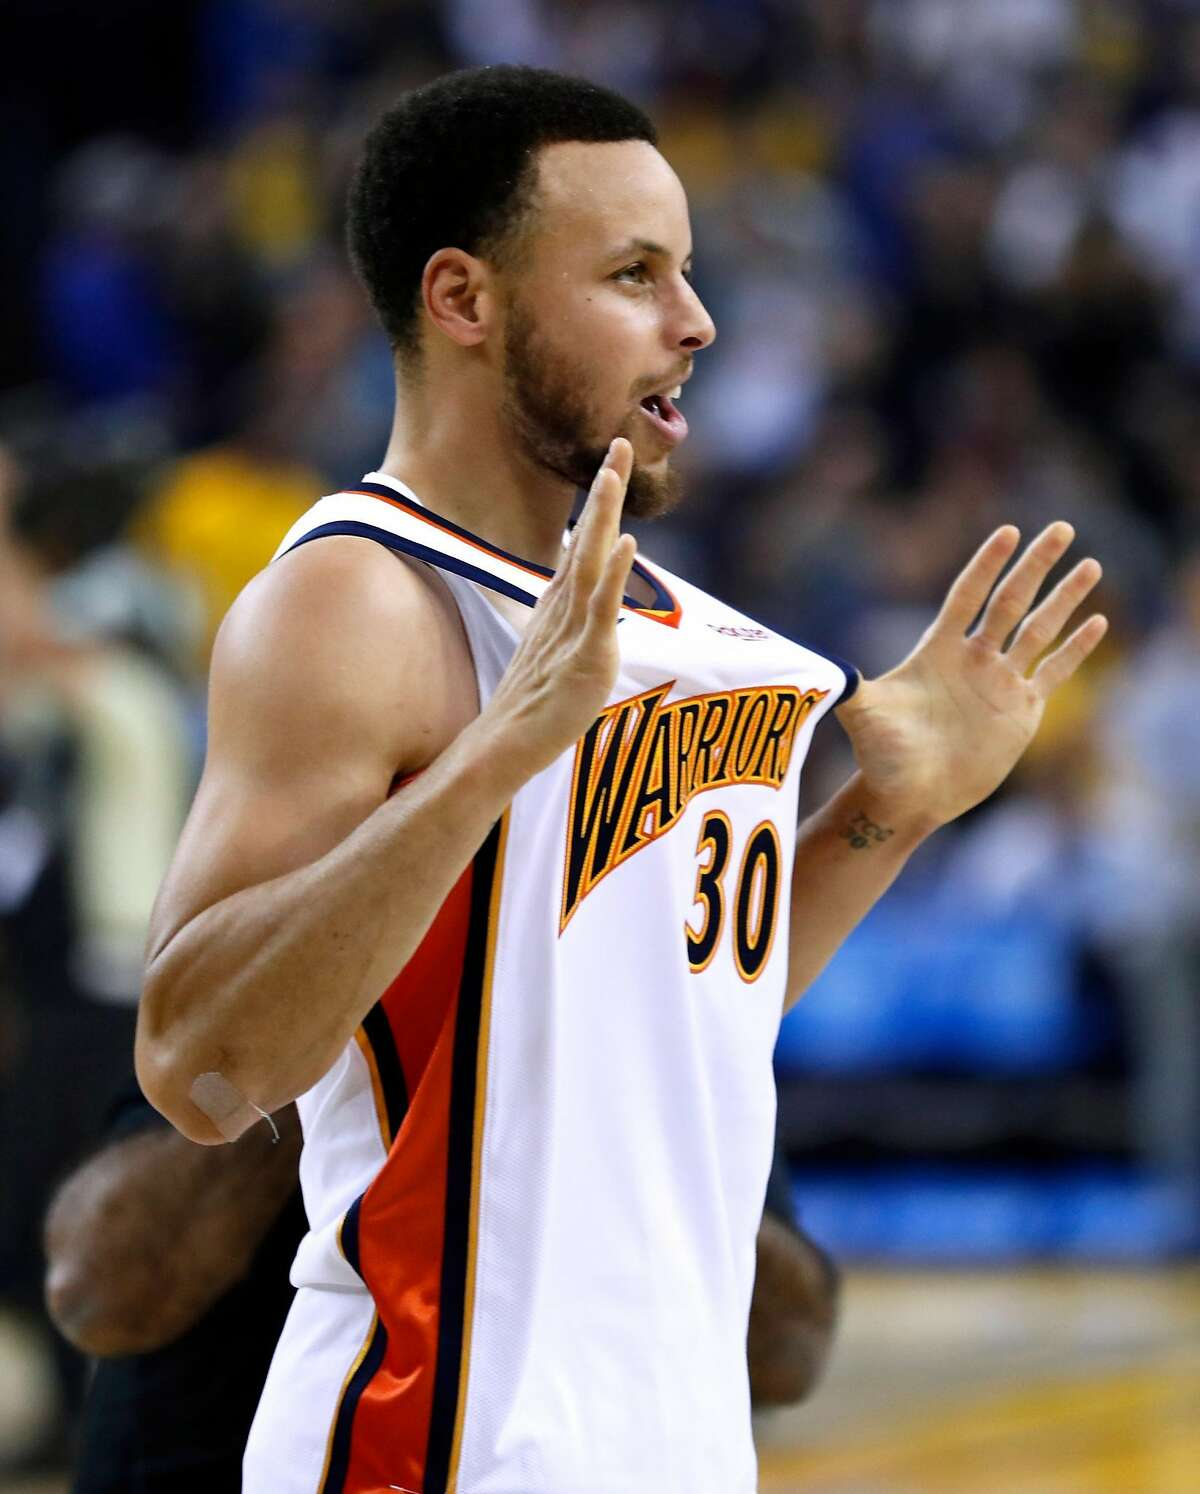 """Golden State Warriors' Stephen Curry shows off """"We Believe"""" era jersey before playing Los Angeles Clippers during NBA game at Oracle Arena in Oakland, Calif., on Sunday, April 7, 2019."""